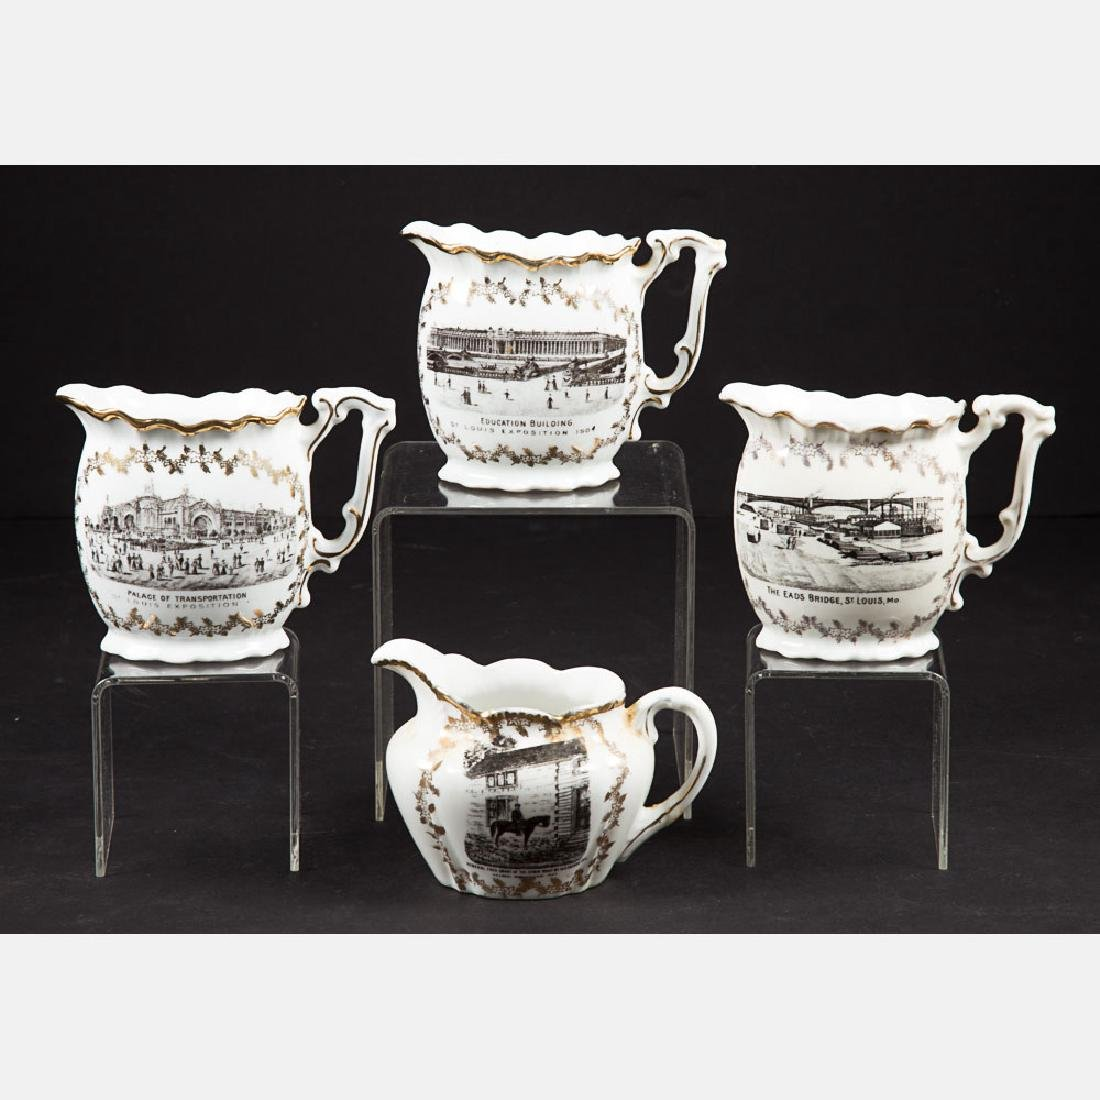 A Group of Four Victoria Carlsbad Austria Porcelain